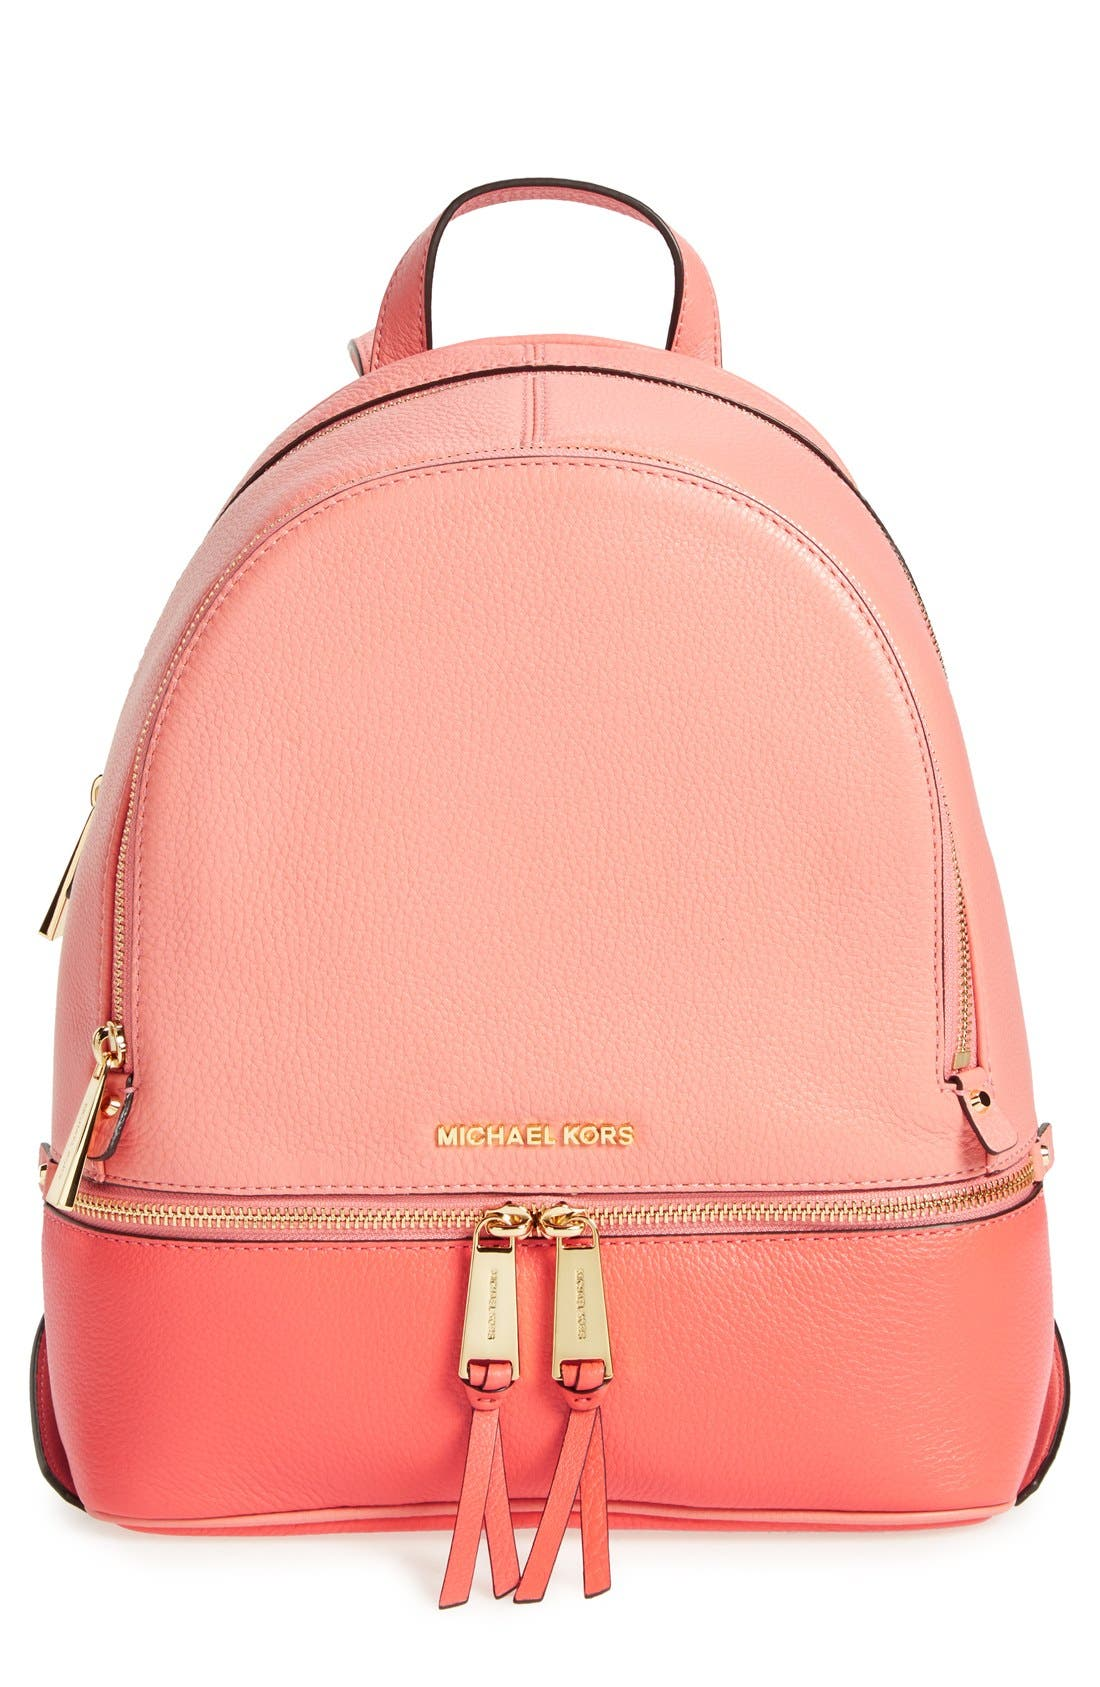 Alternate Image 1 Selected - MICHAEL Michael Kors 'Small Rhea' Colorblock Leather Backpack